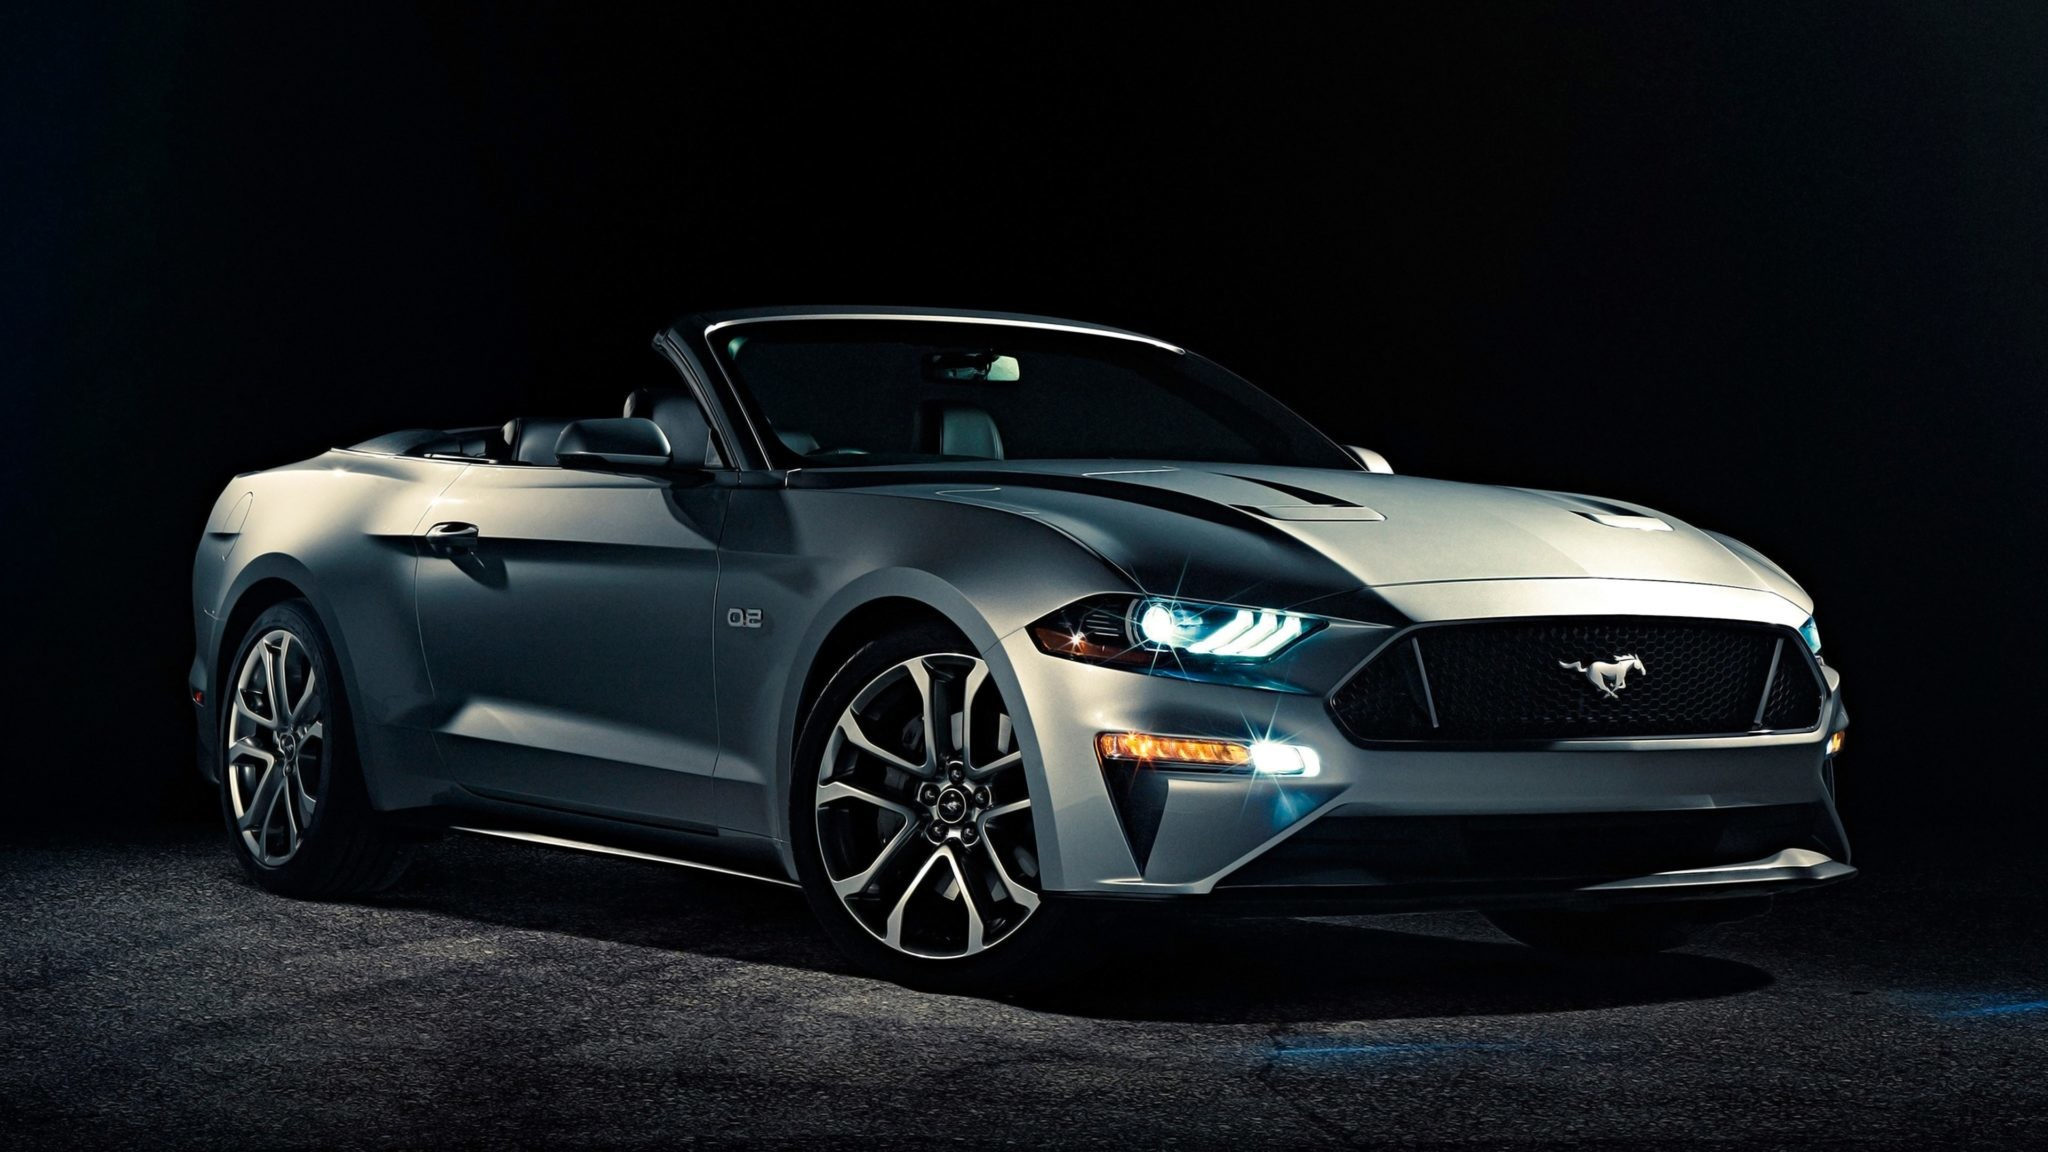 2048x1152 2018 Ford Mustang Convertible 4K Wallpapers, Images, HD